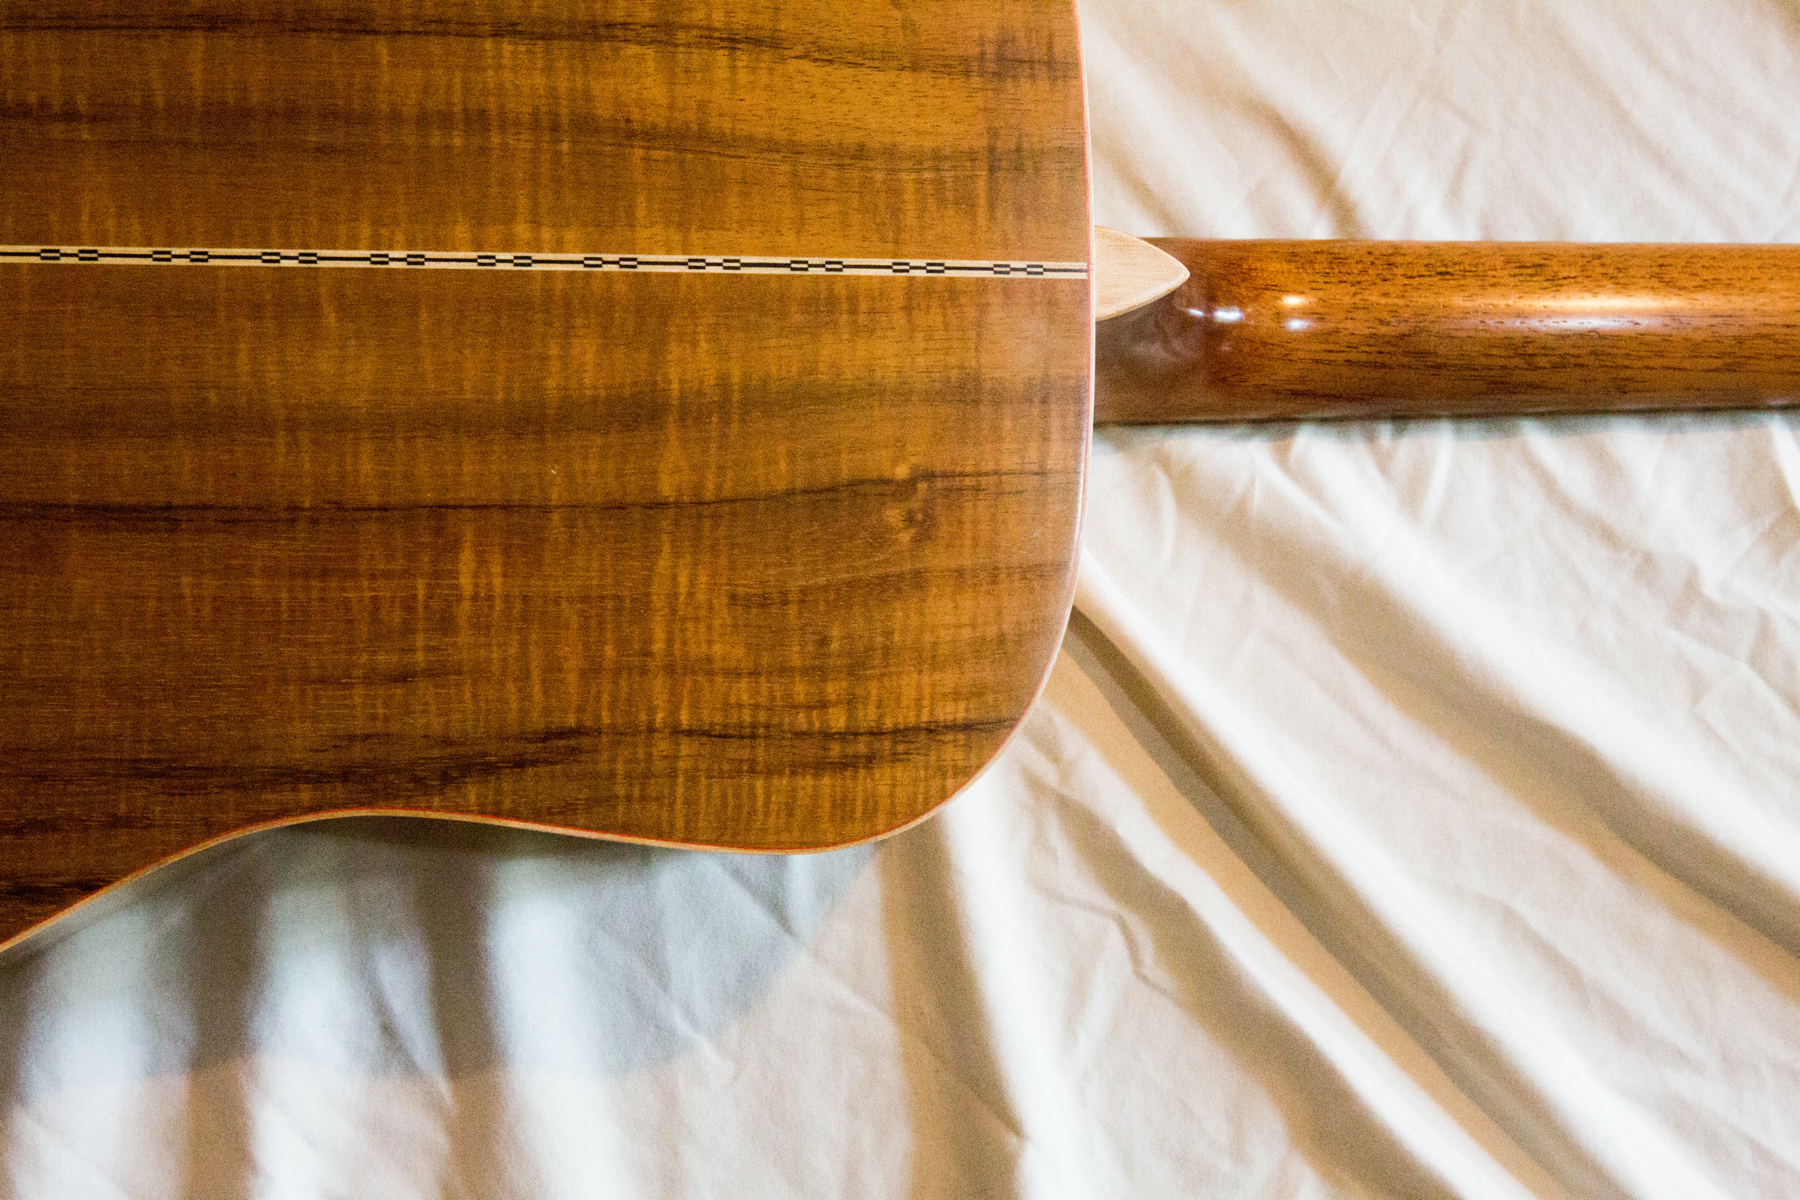 d-2-Koa-back-neck-N39A7016